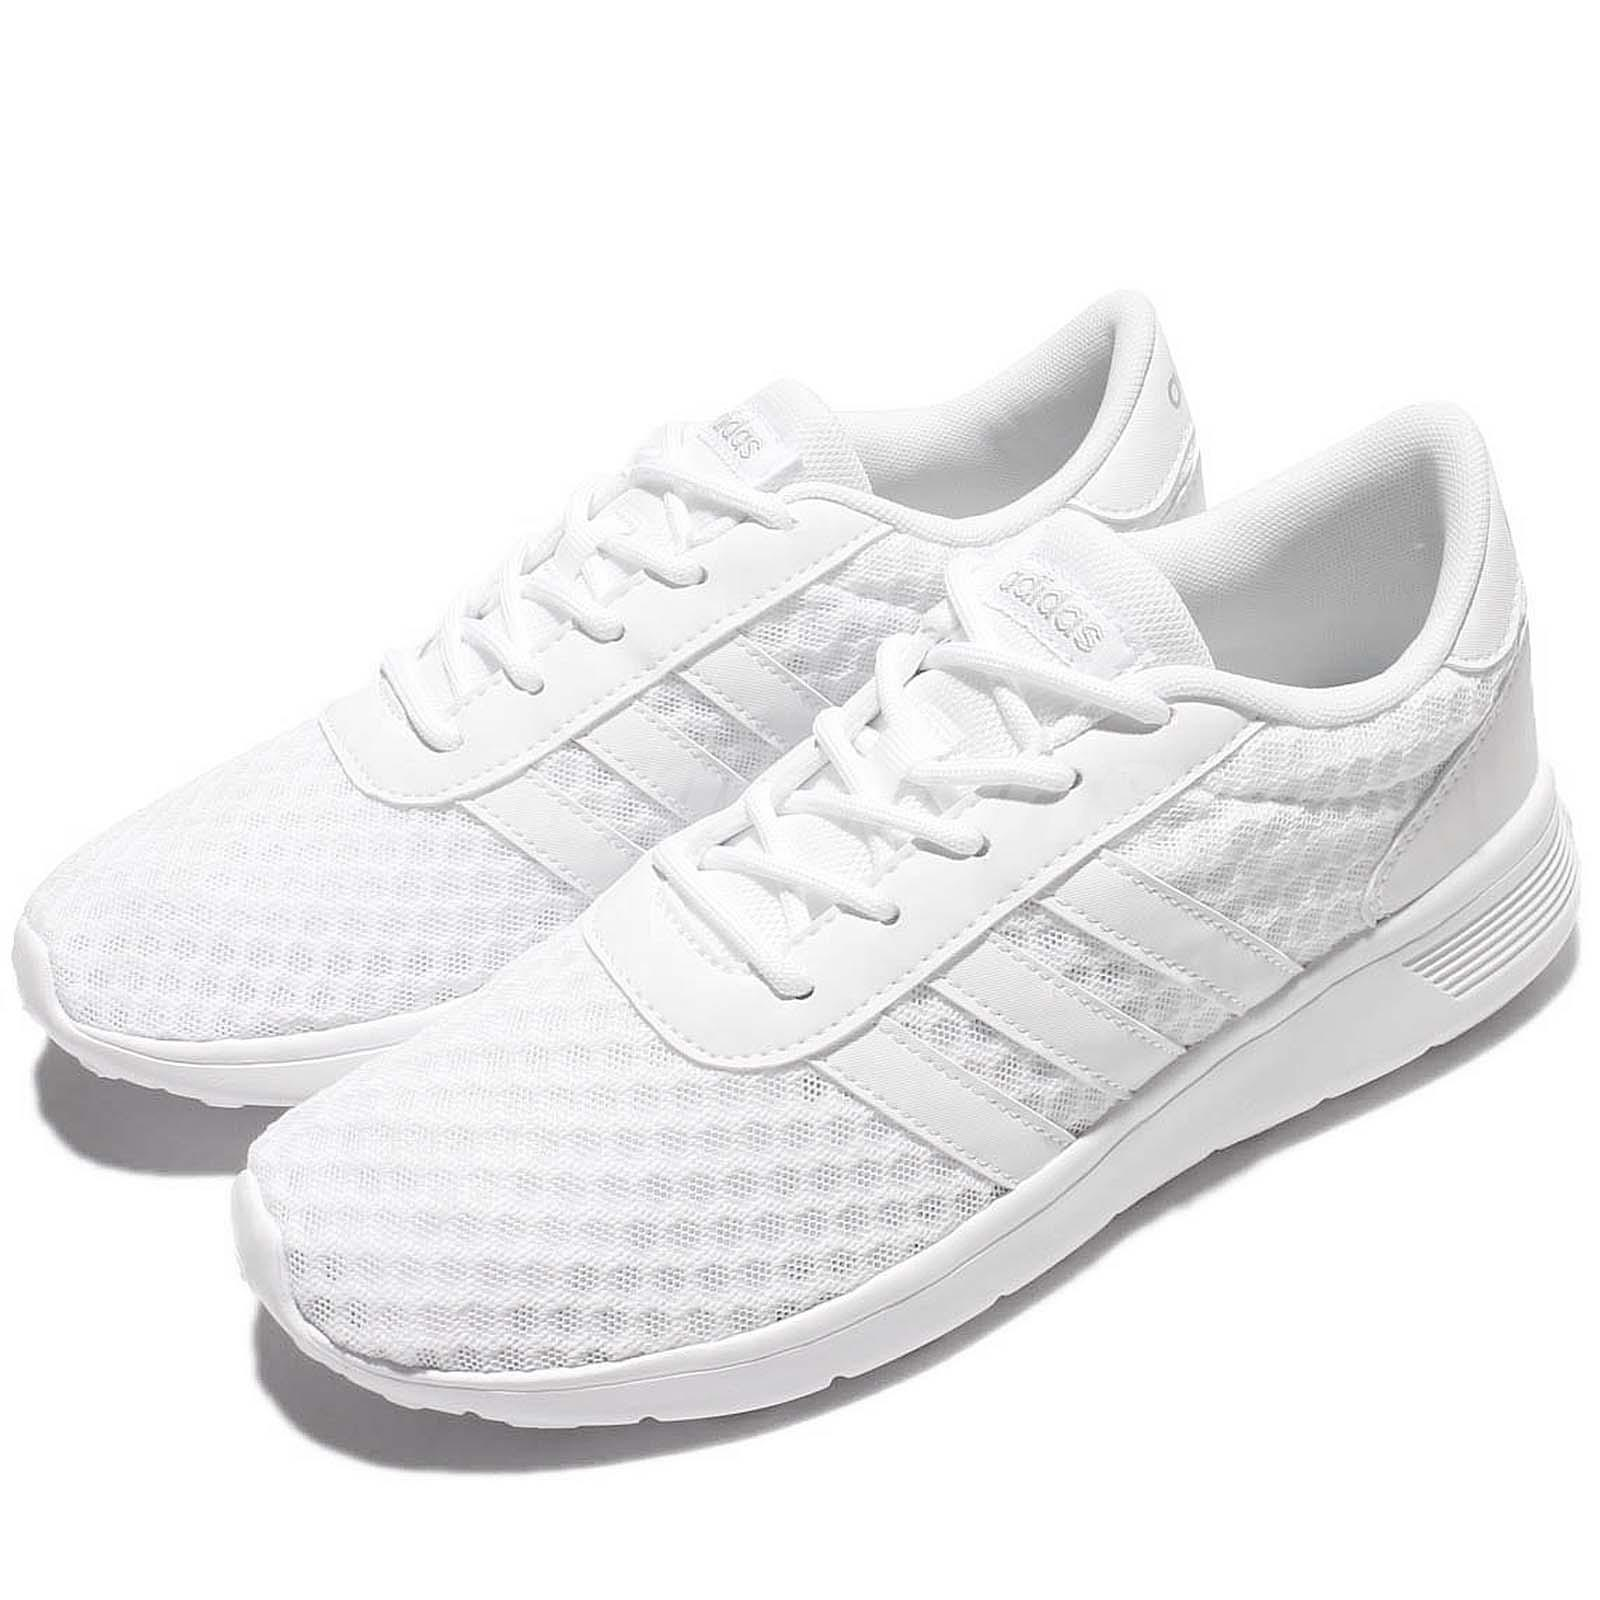 27f9218fe Details about adidas Neo Label Lite Racer W White Women CloudFoam Running  Shoe Sneakers AW3837